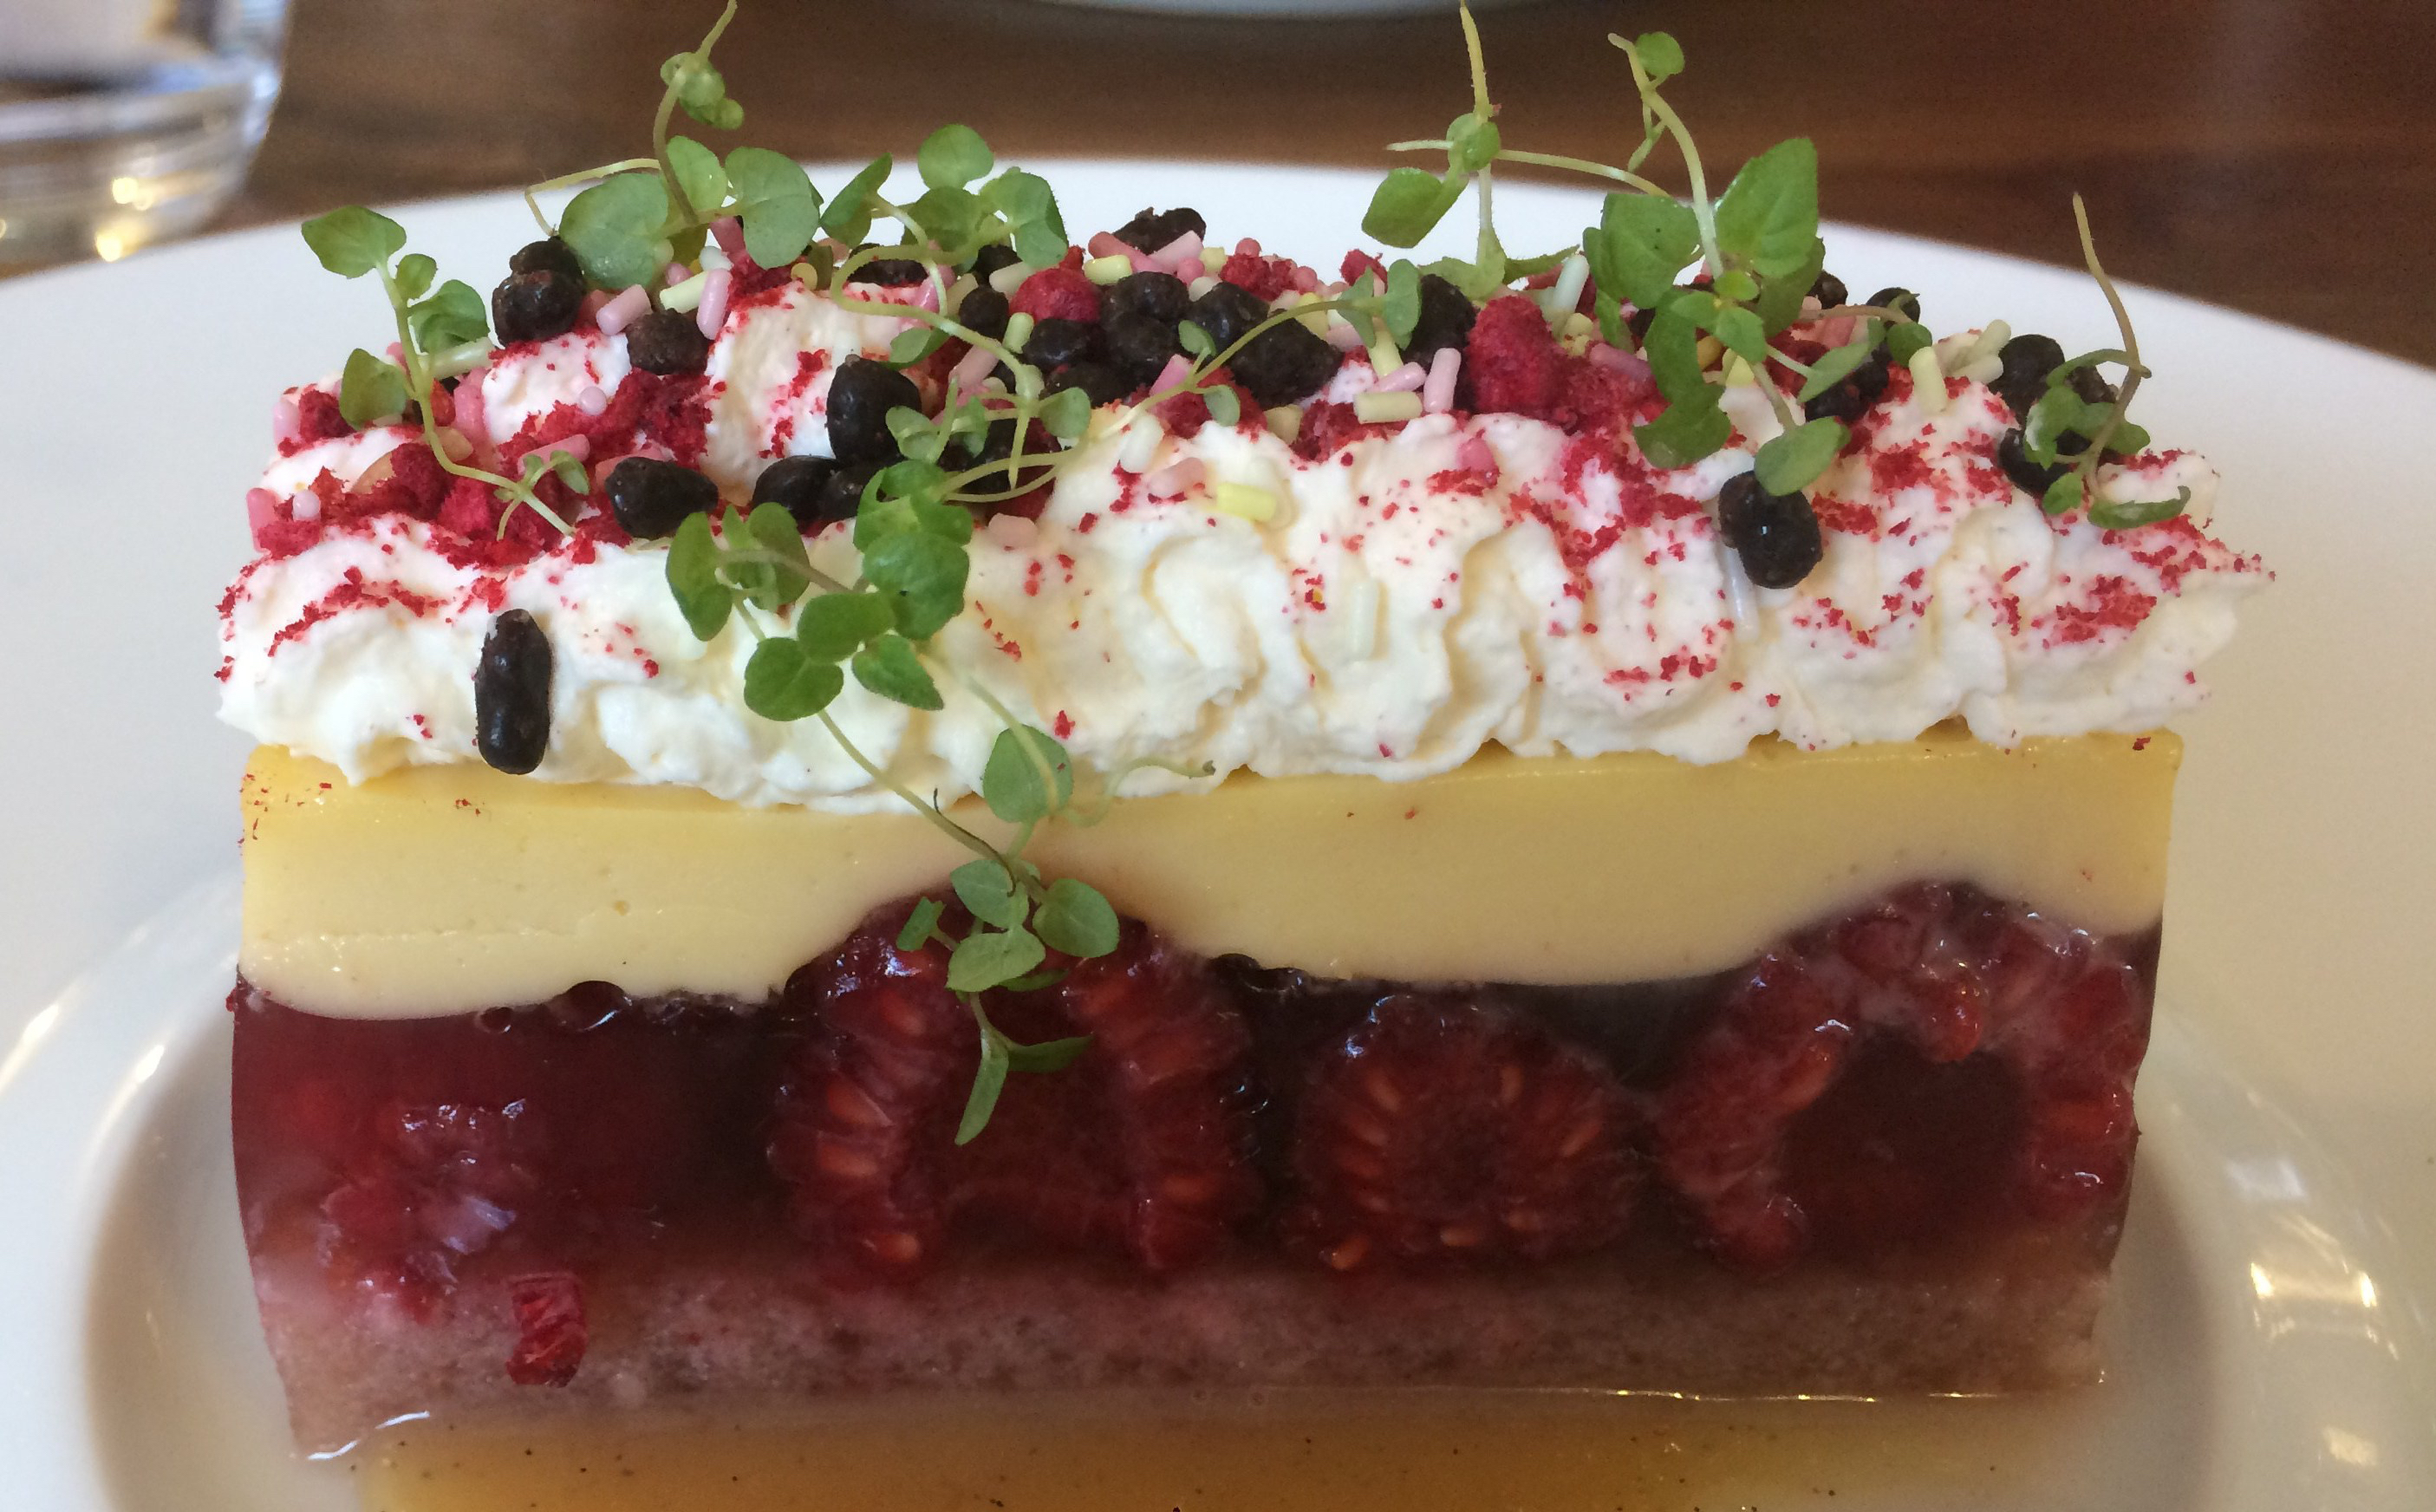 Nanny Bush's trifle at Benedicts fine dining restaurant in Norwich